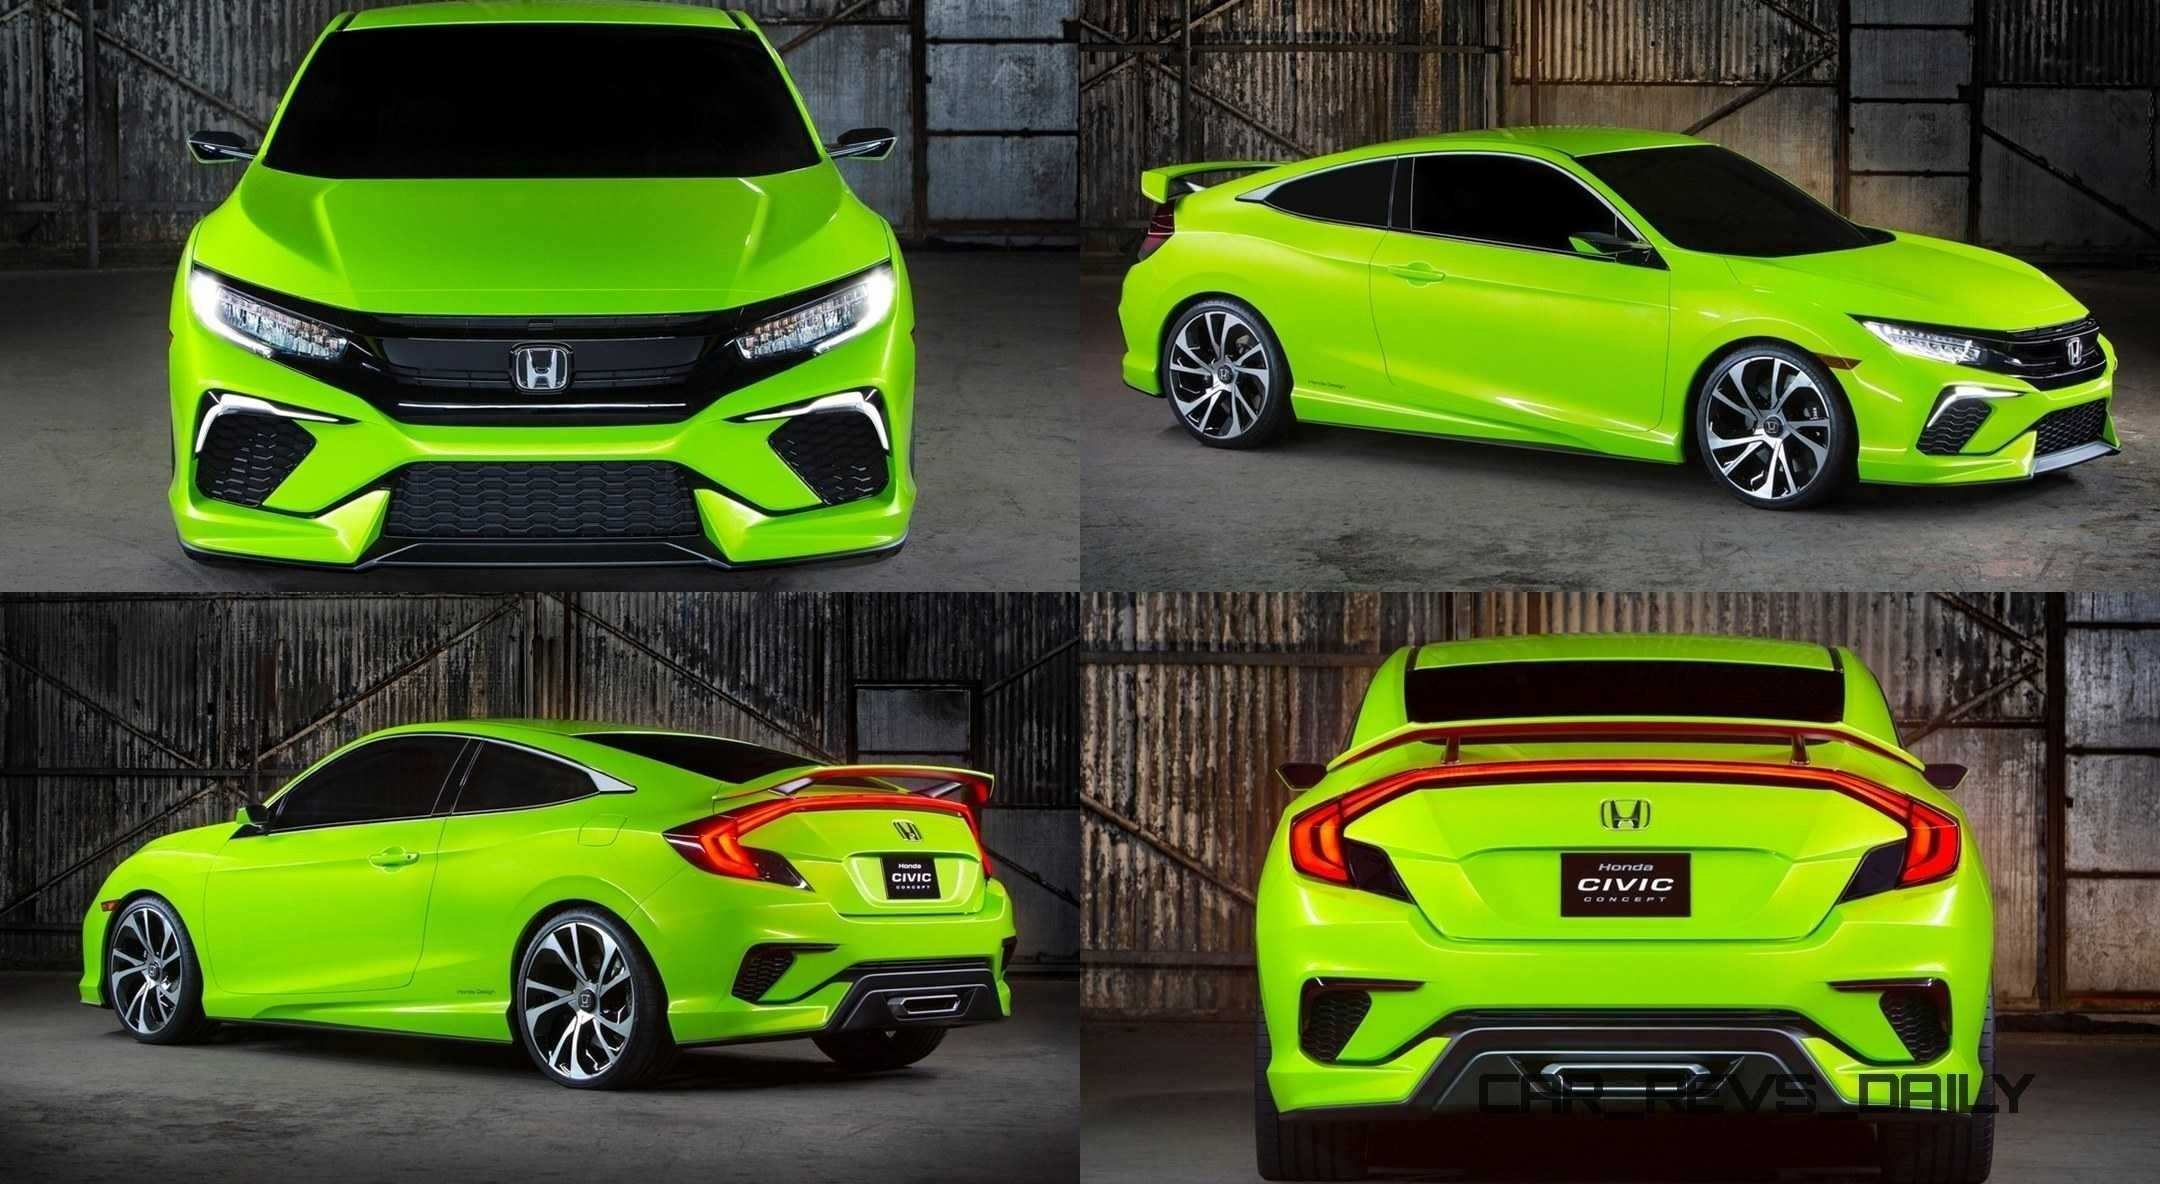 51 The Best 2020 Honda Civic Si Type R Model